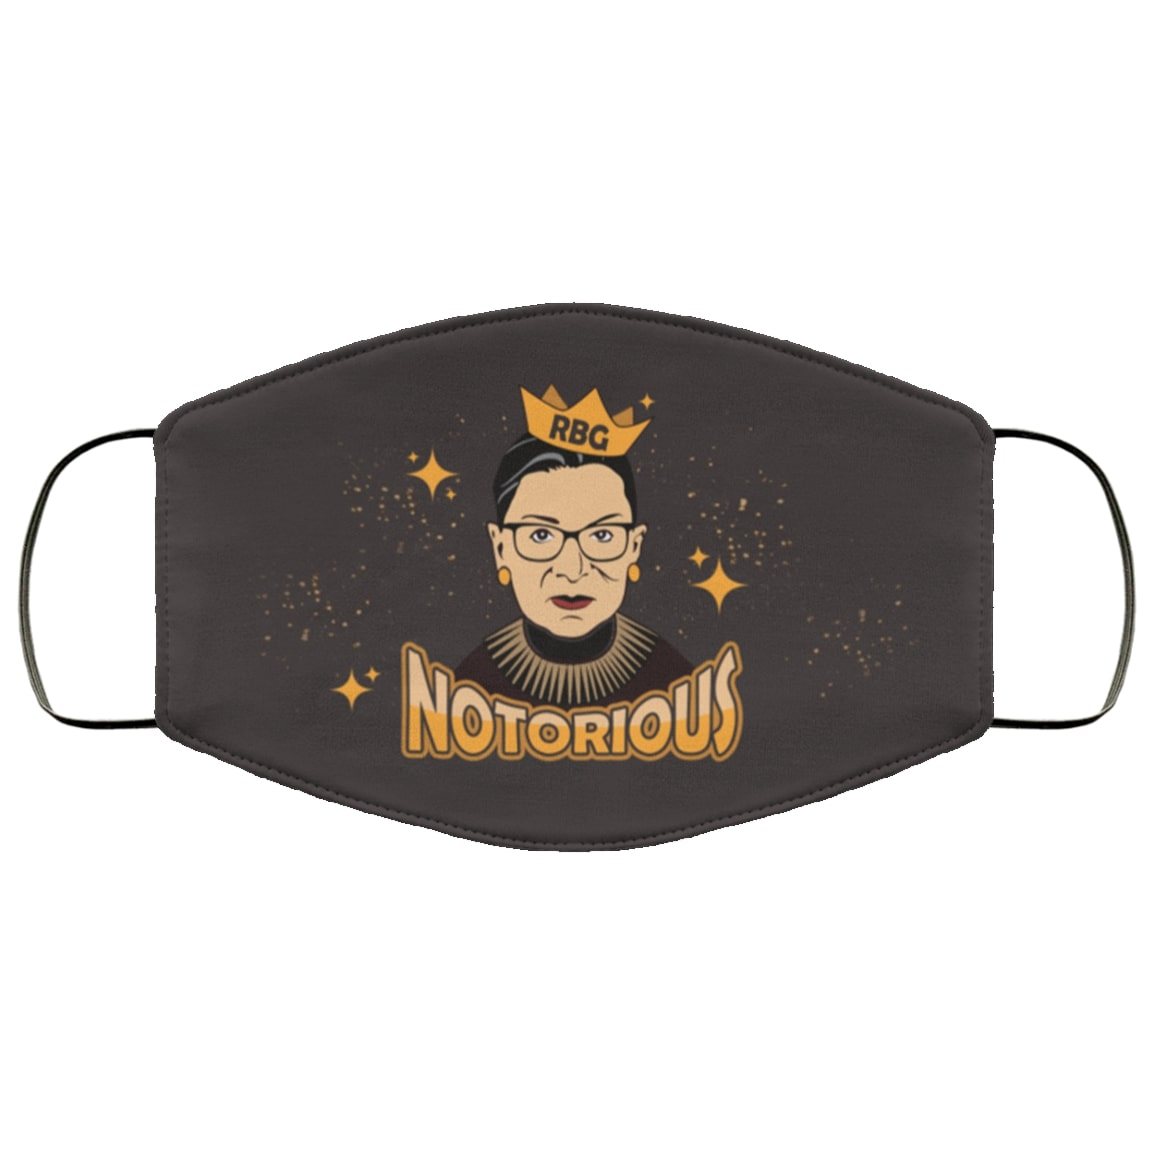 Notorious ruth bader ginsburg feminism anti pollution face mask 2